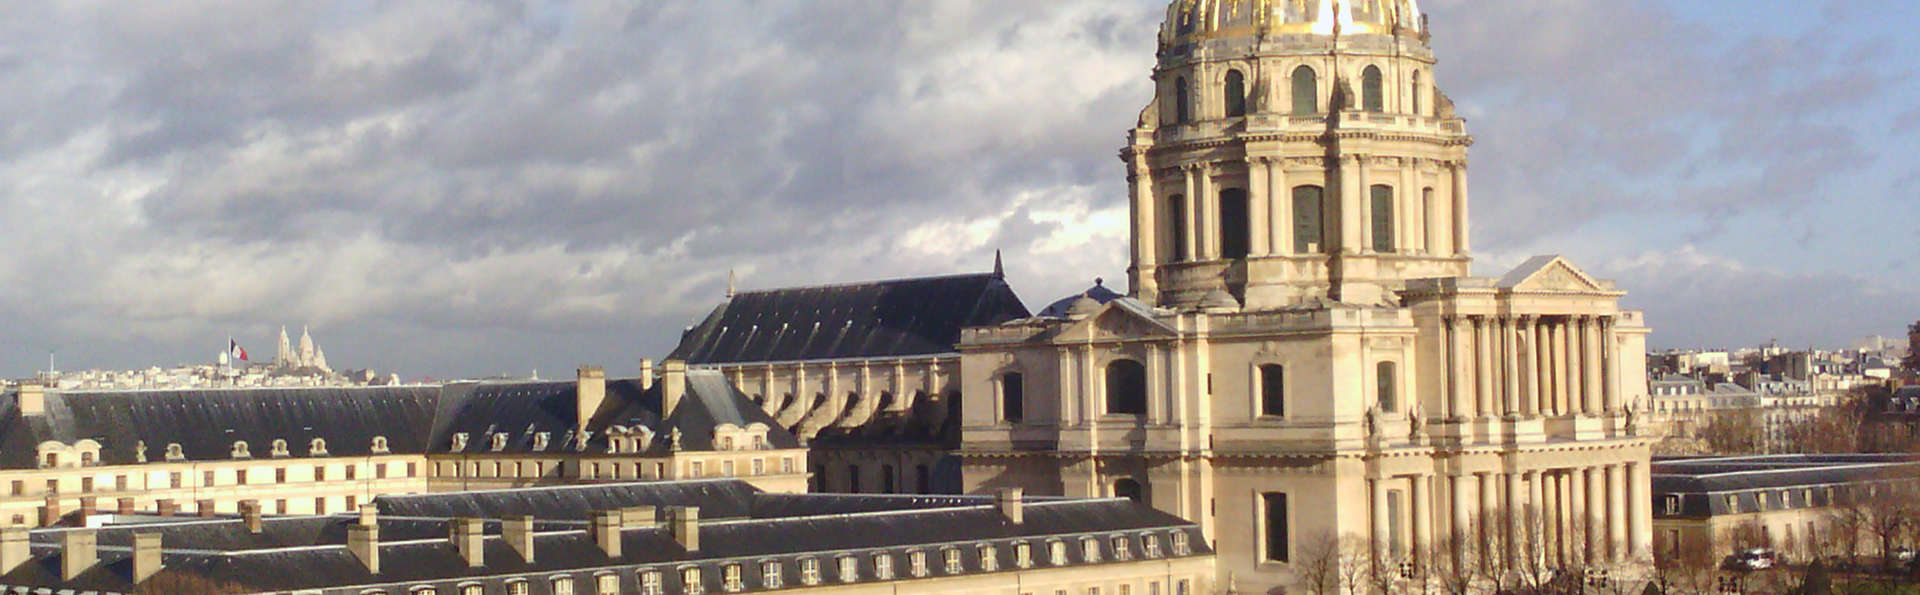 Hôtel de France Invalides - EDIT_surroundings.jpg